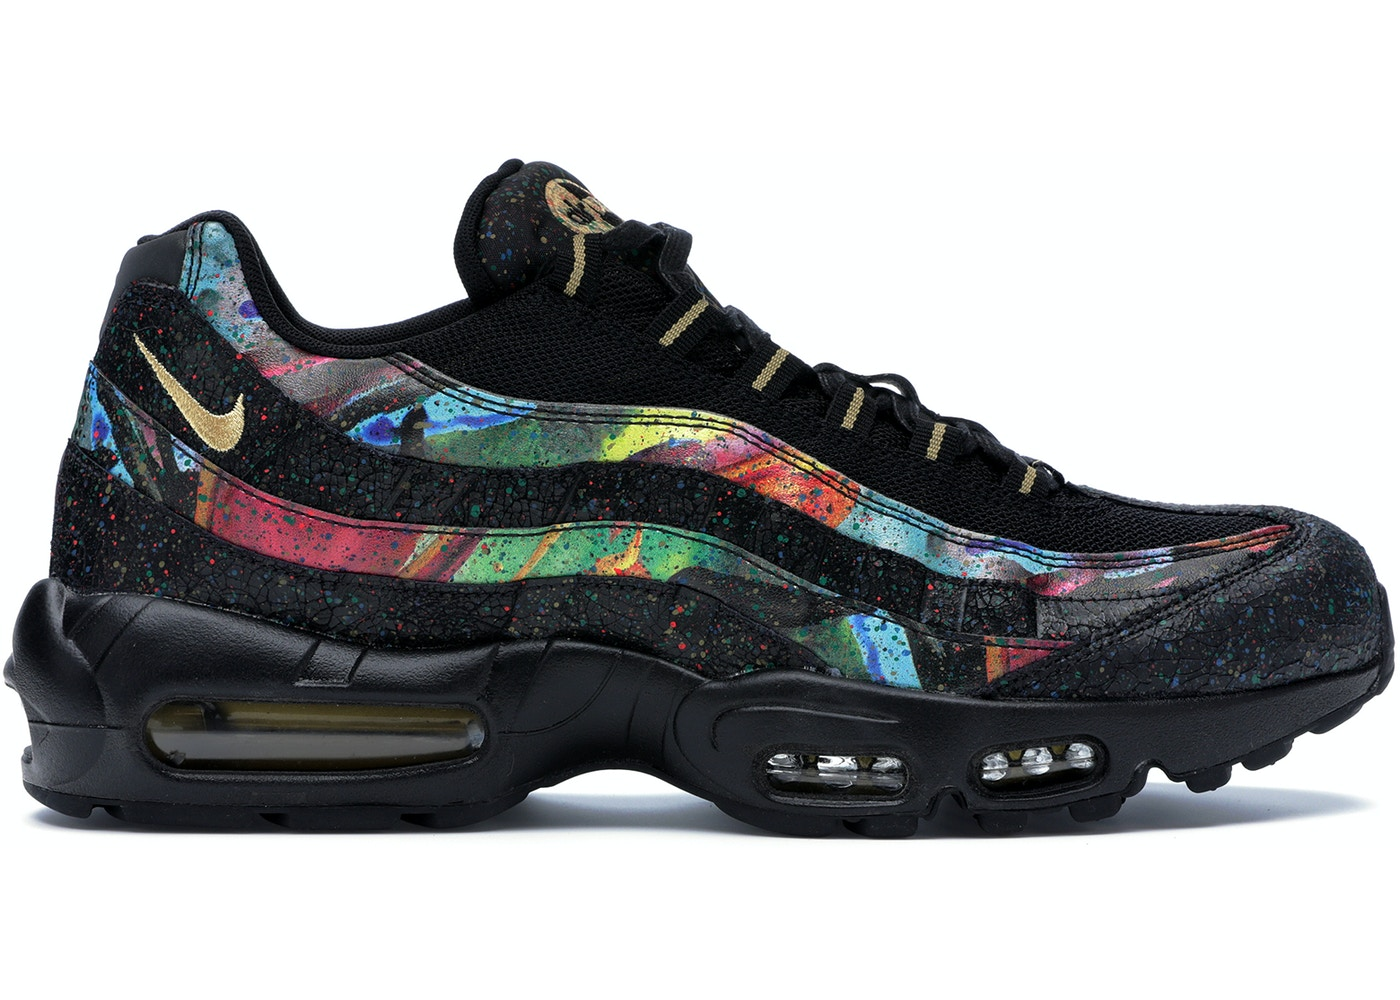 afd922e23c08 Buy Nike Air Max 95 Shoes   Deadstock Sneakers